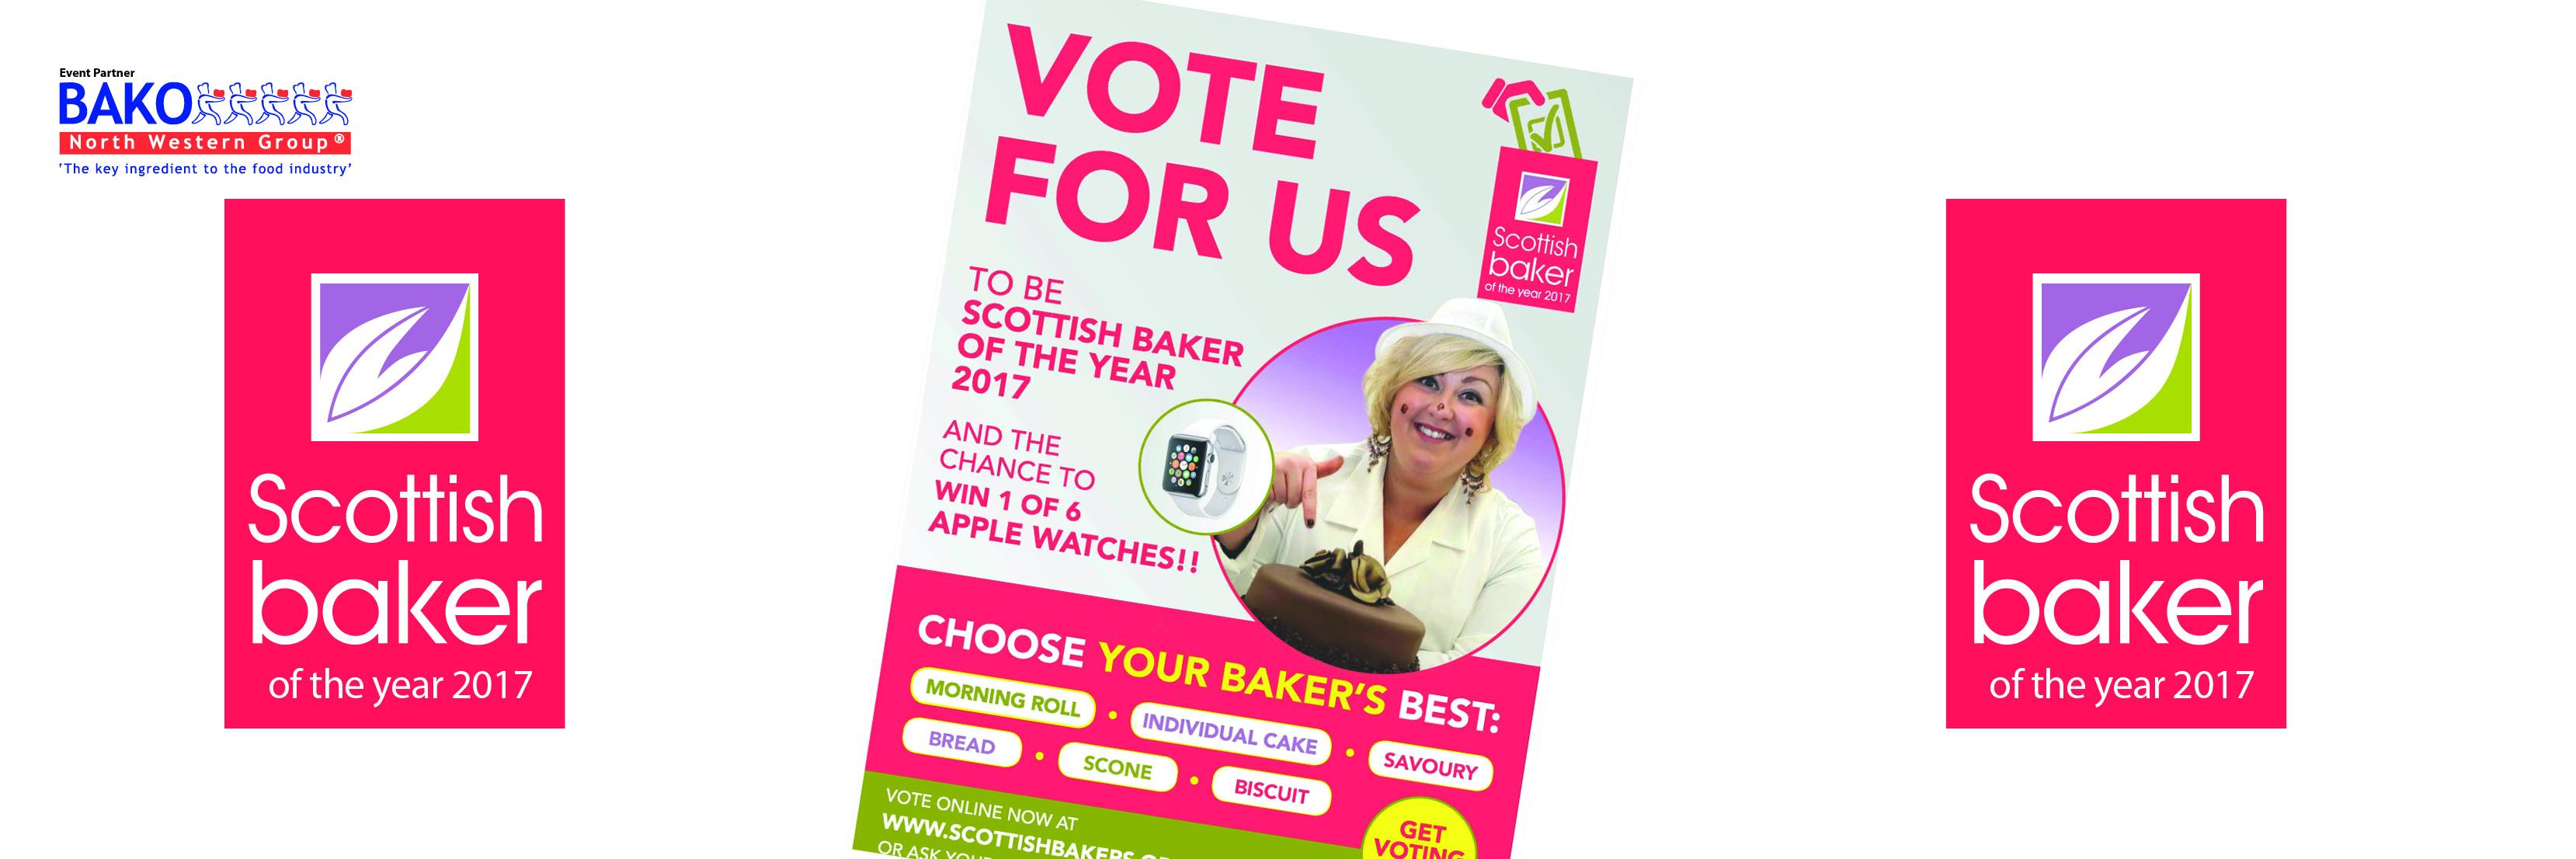 Scottish Baker of the year banner